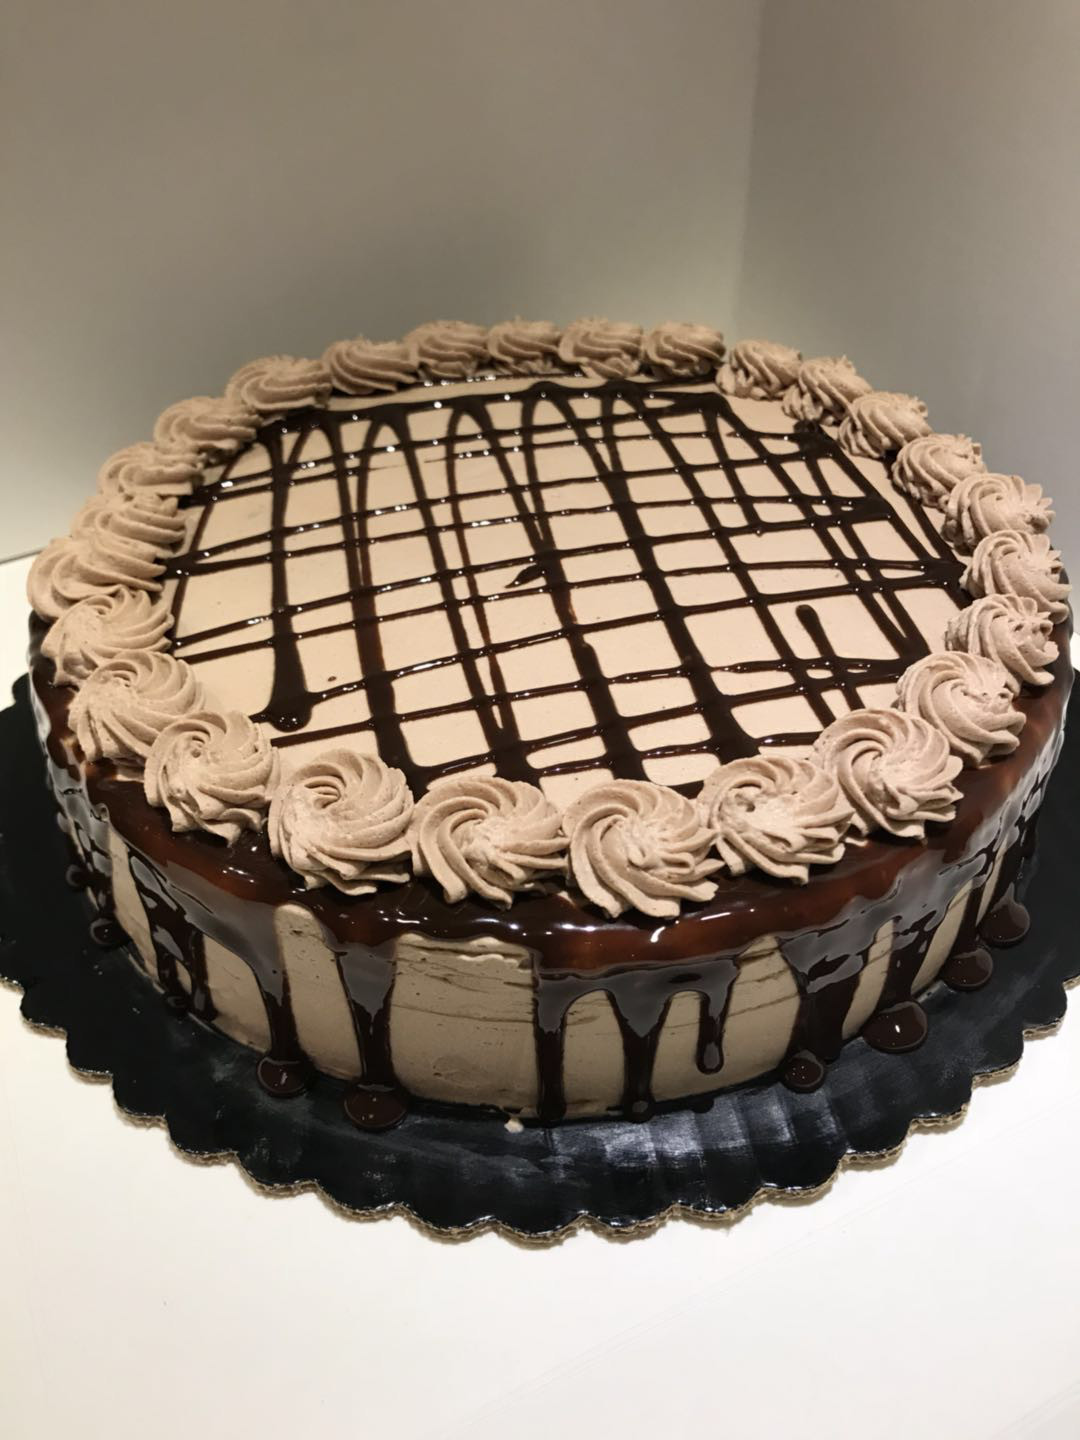 Chocolate Crepe Cake 6 inch (8 and 10 inch also available)